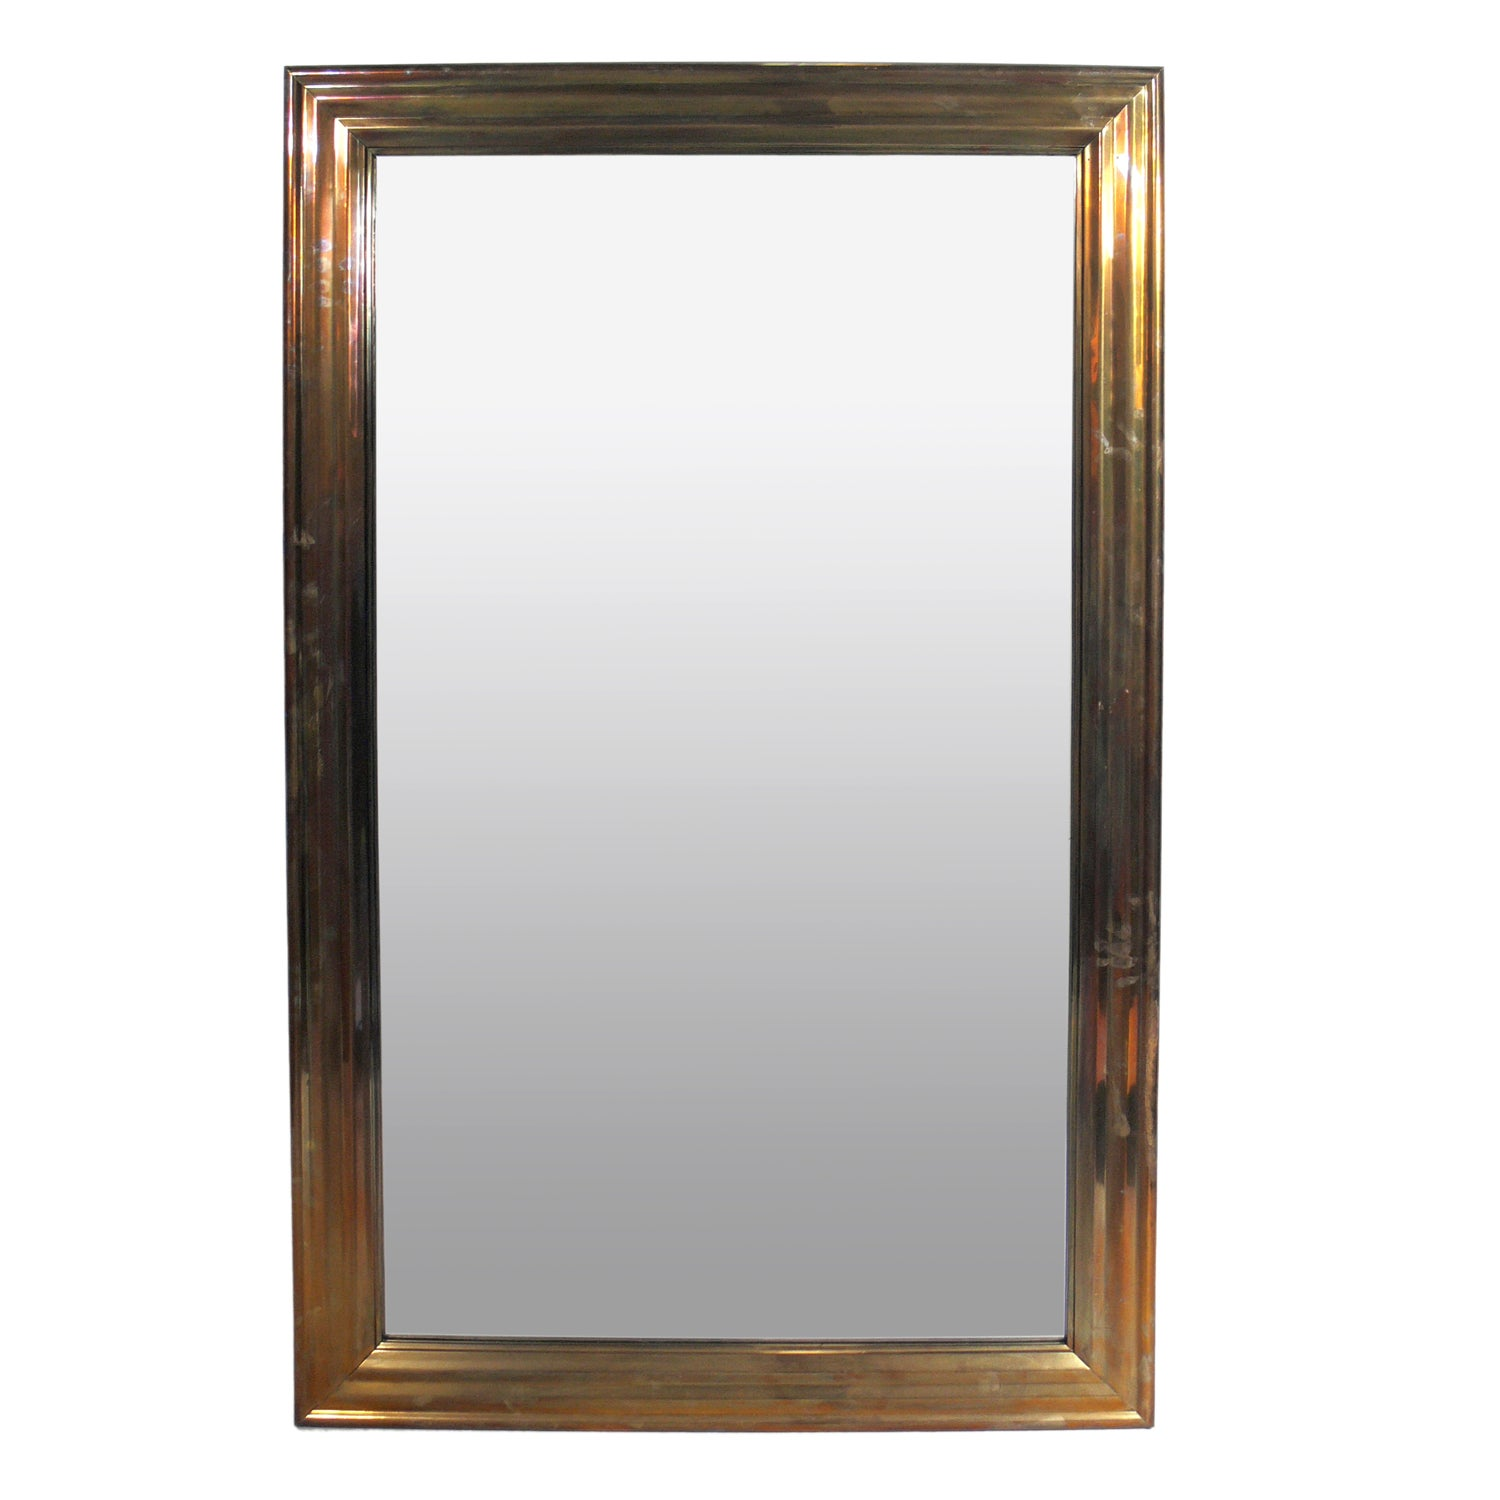 Large-Scale Brass Mirror